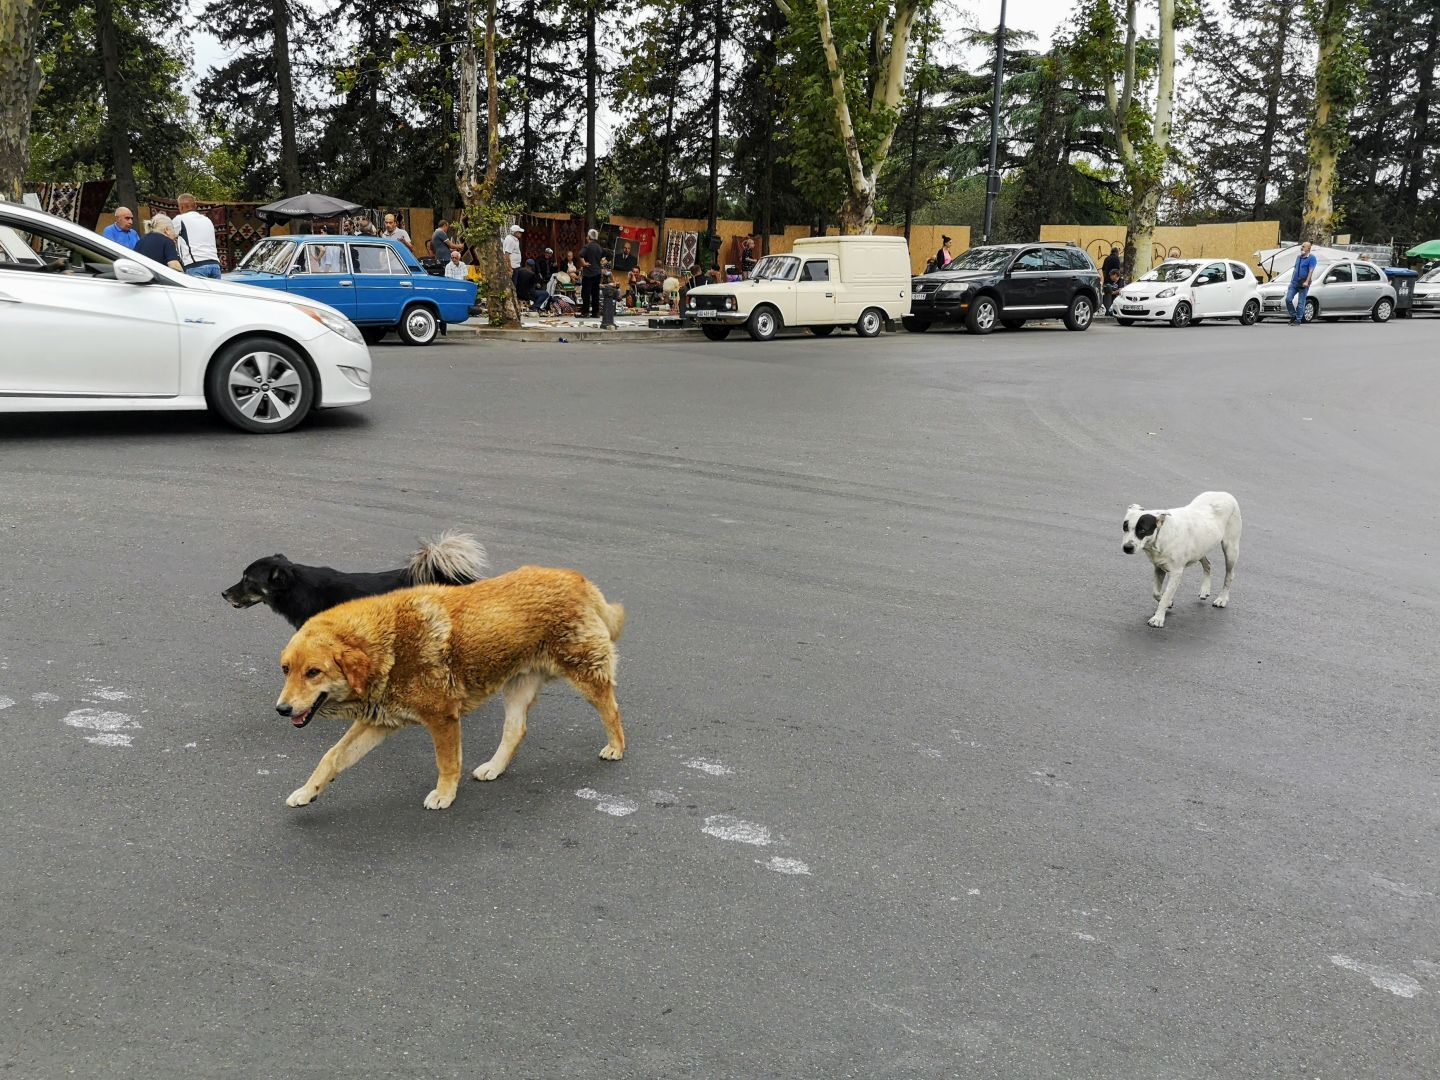 street dogs in georgia country